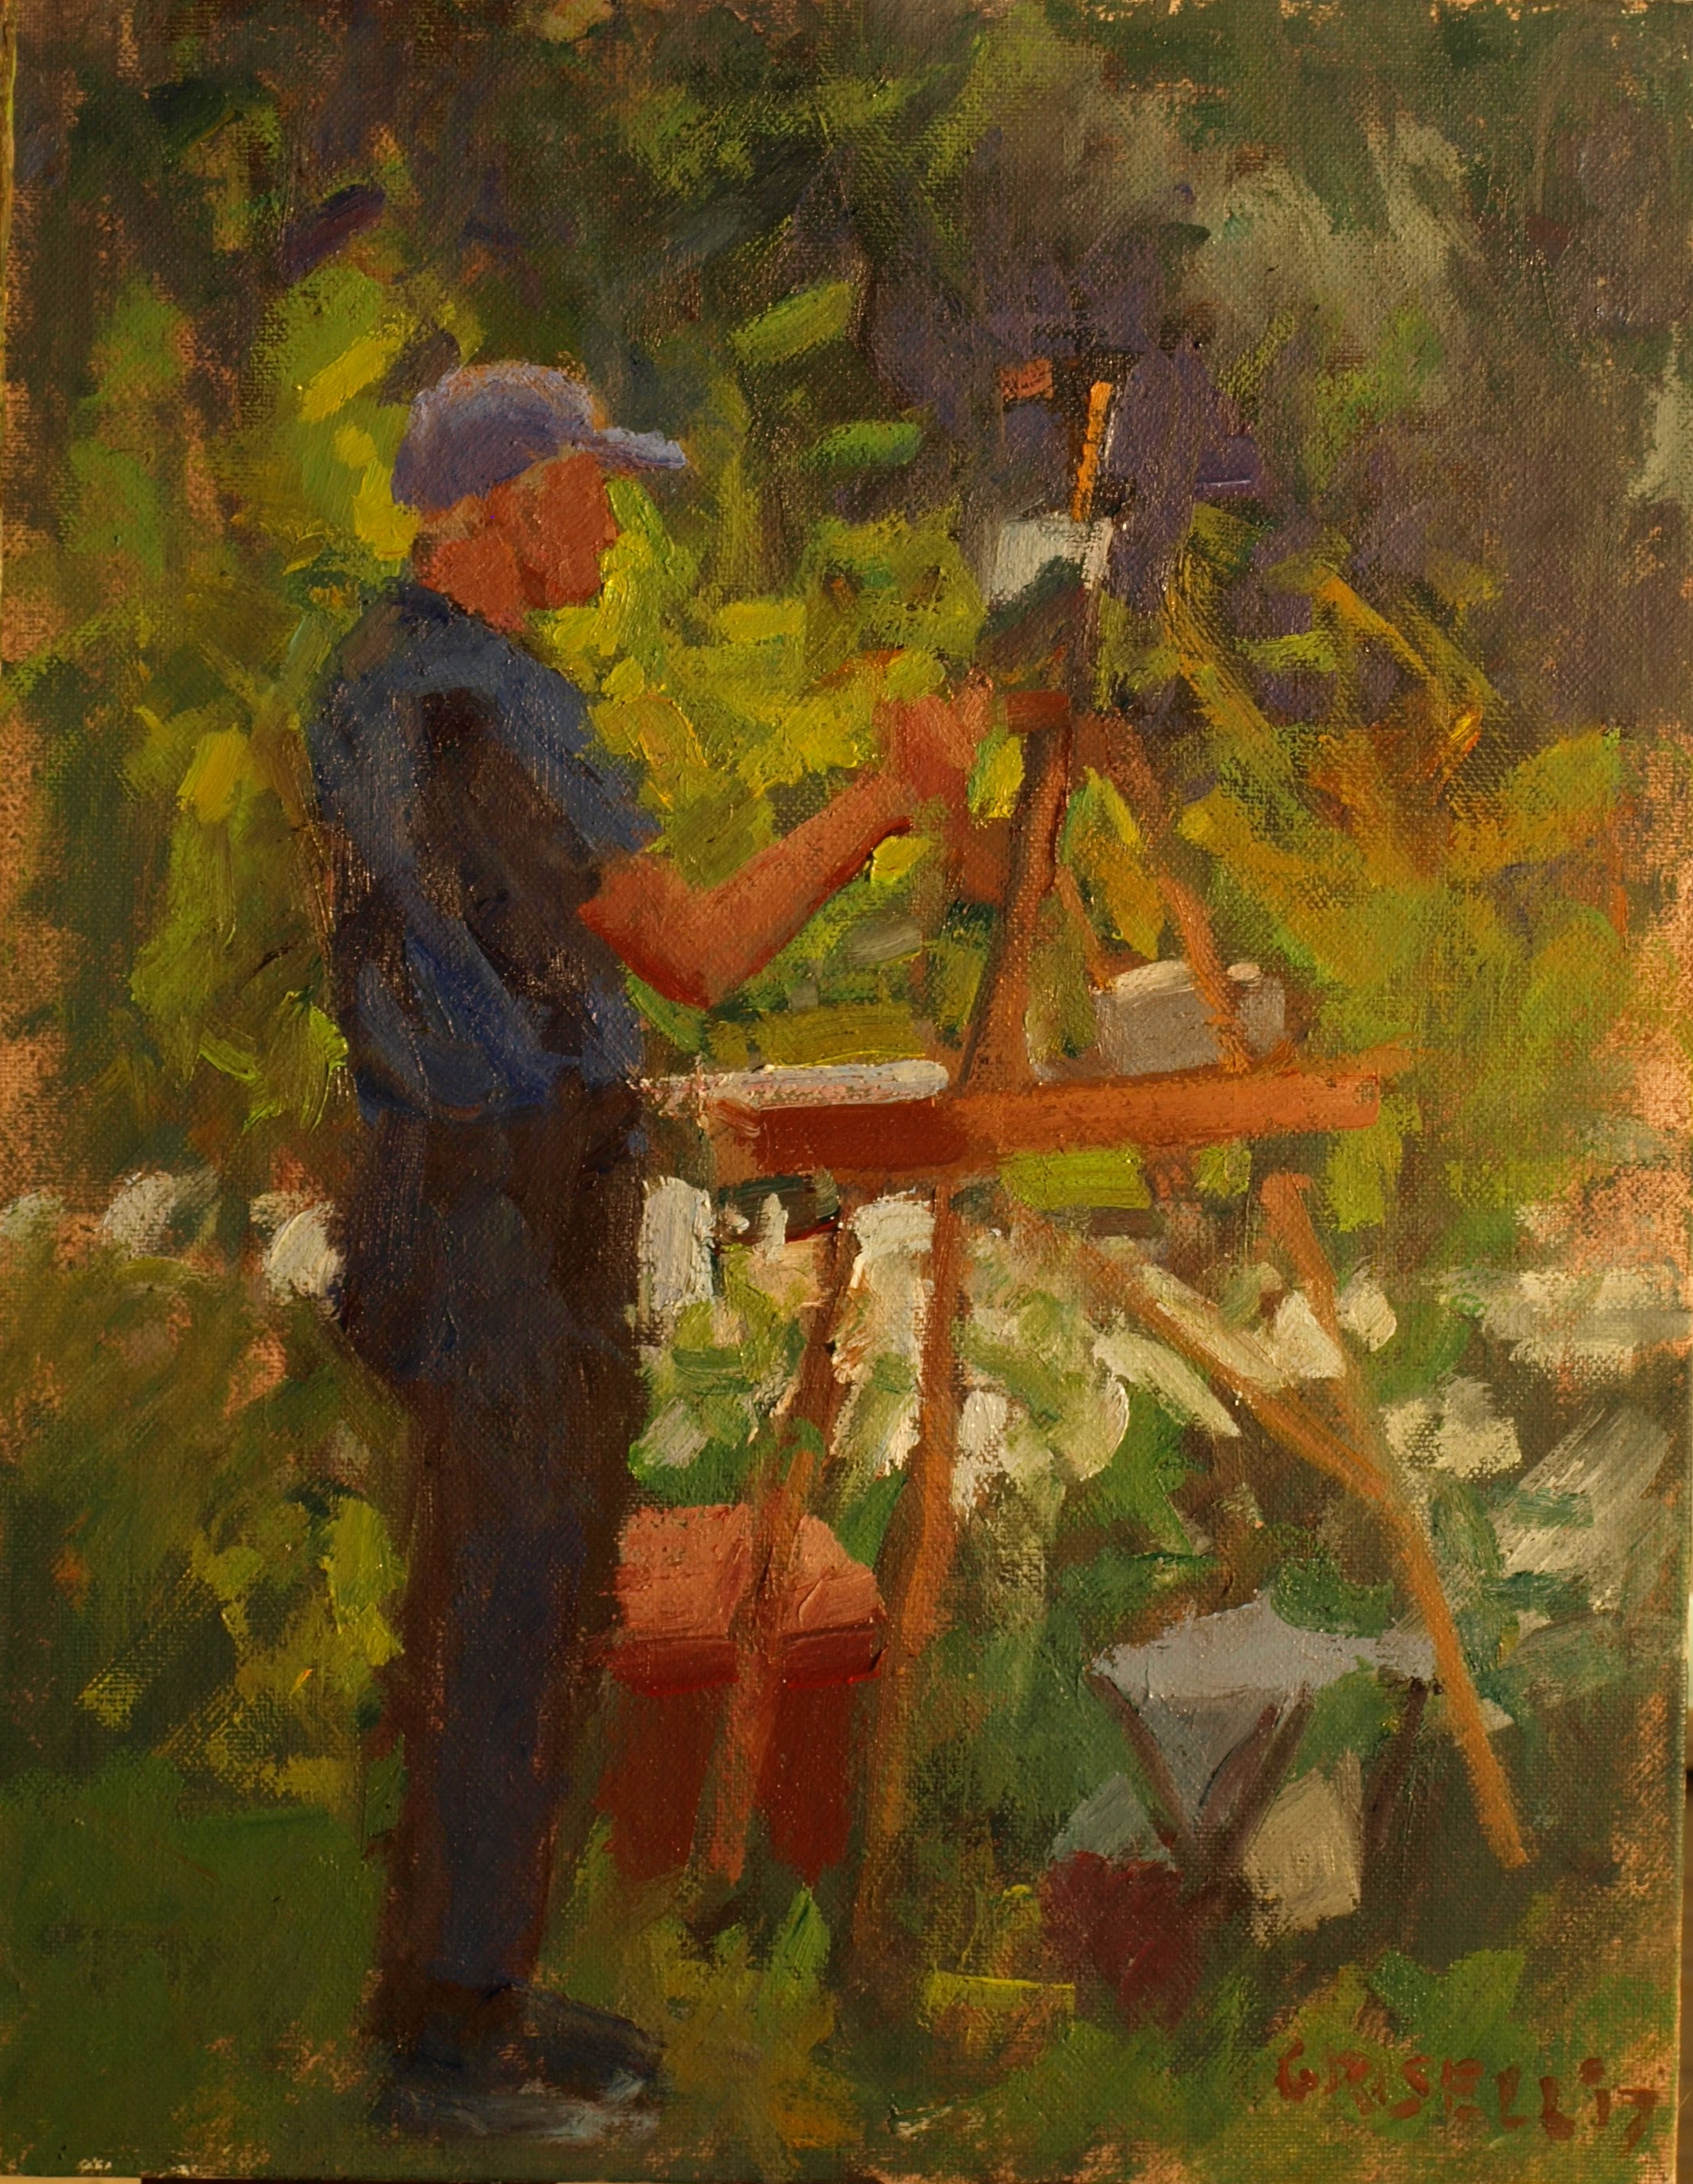 Chris Painting, Oil on Panel, 14 x 11 Inches, by Susan Grisell, $275